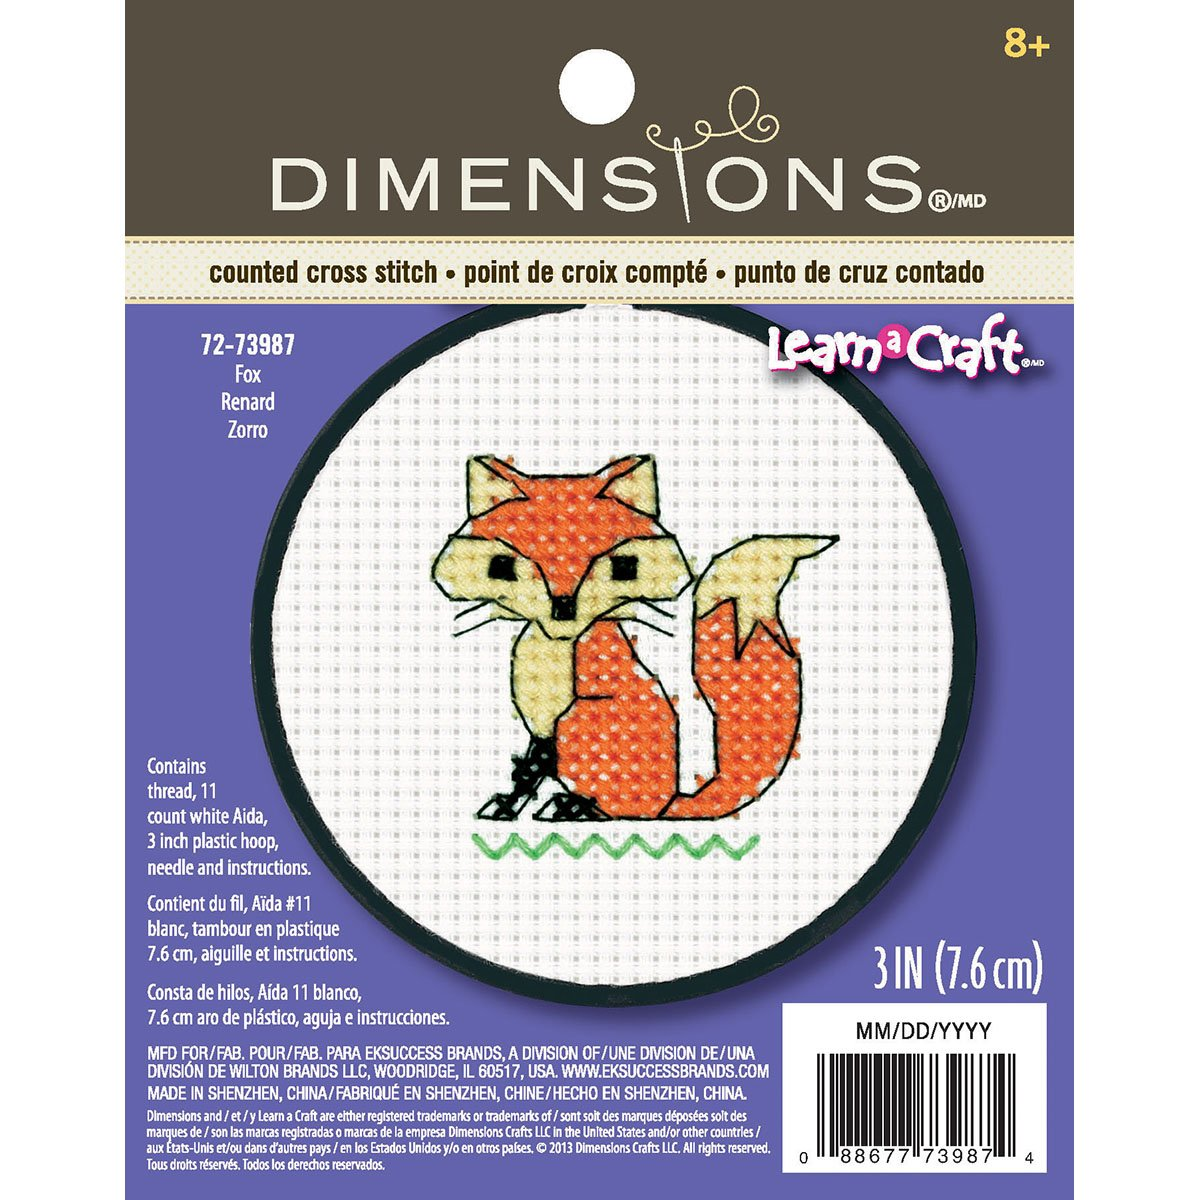 Dimensions 72-73987 Crafts Kids Learn a Craft Counted Cross Stitch, Fox Dimensions Crafts